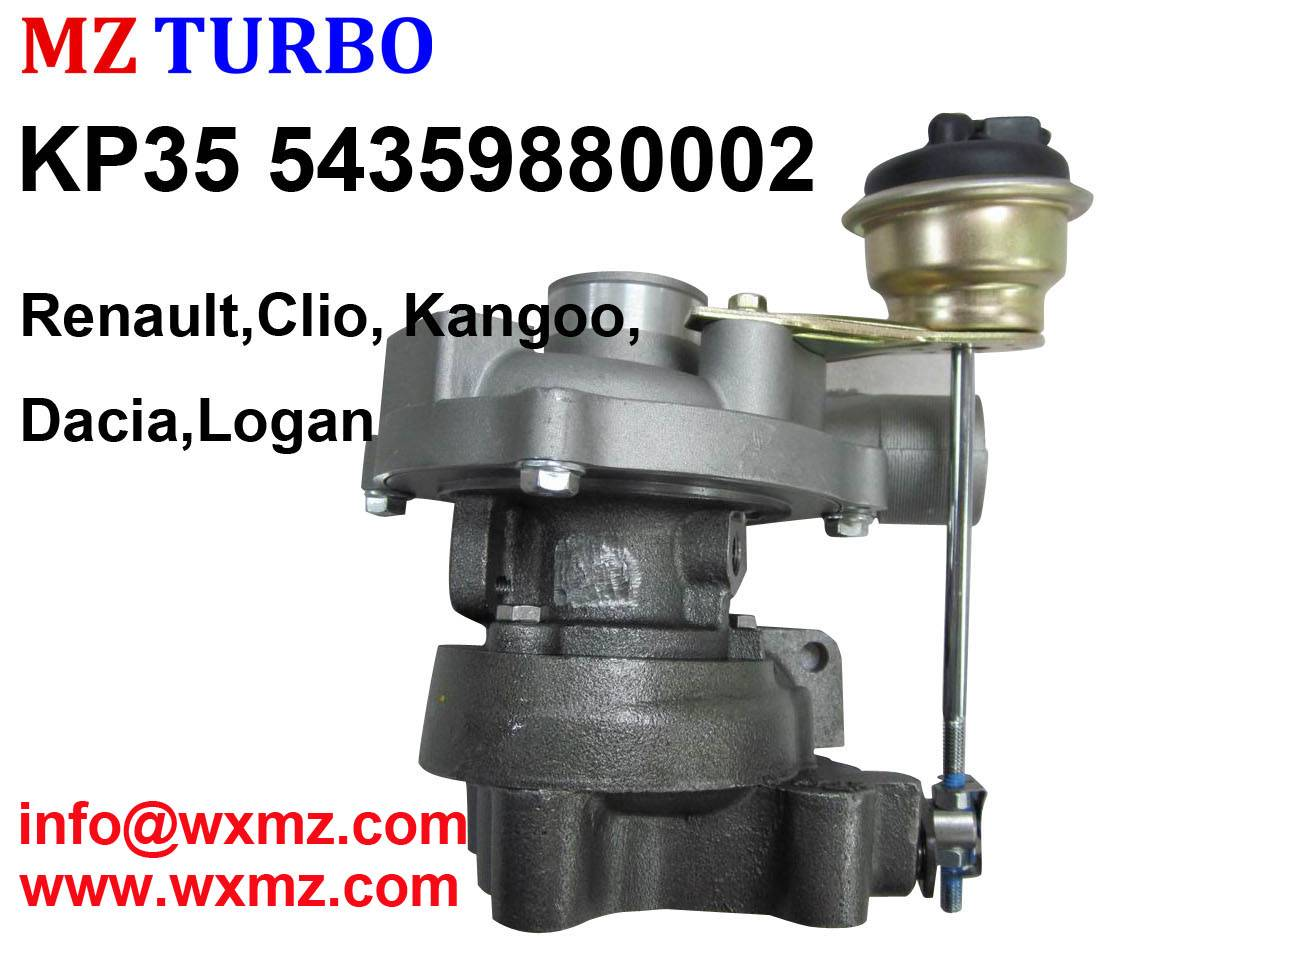 KP35 54359880002 Turbocharger Replacement of Clio, Kangoo